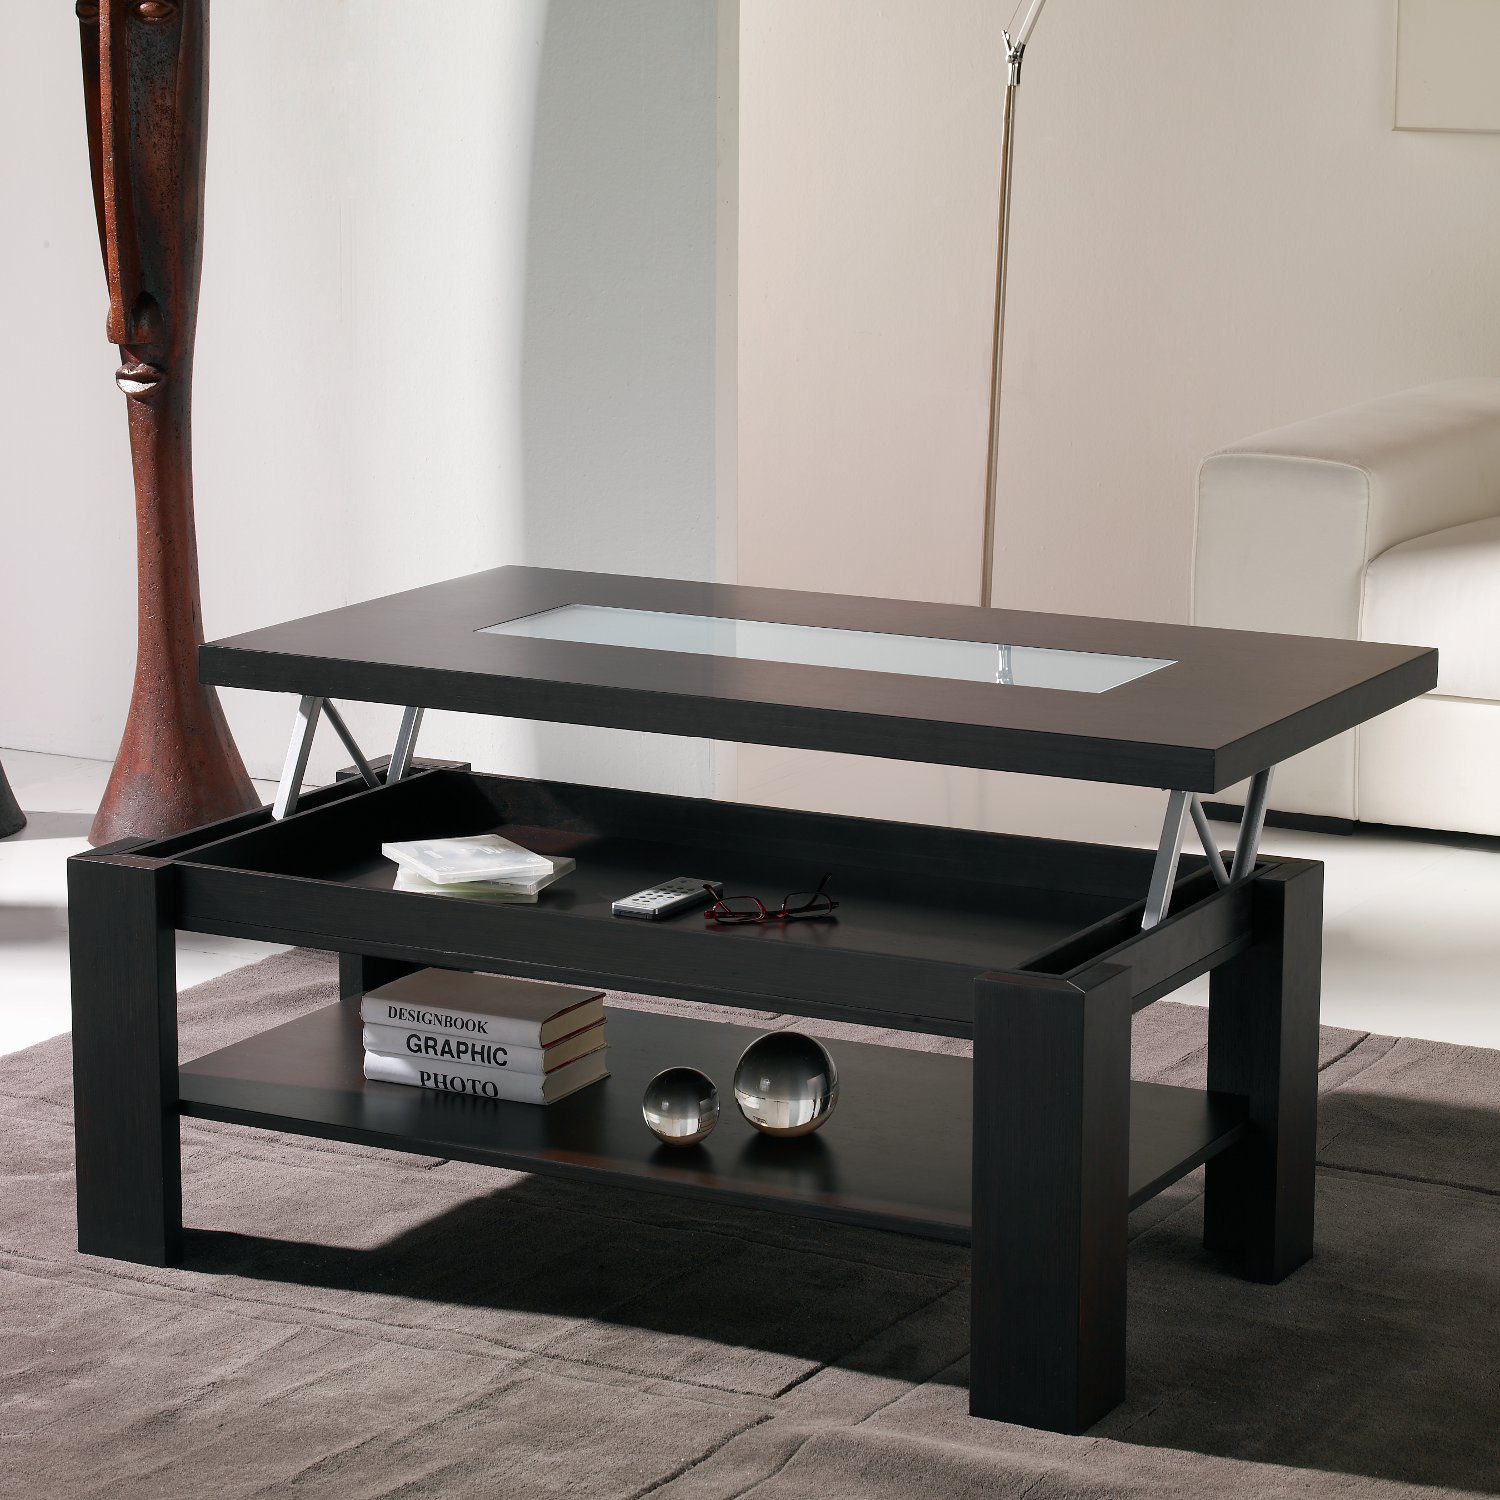 Table basse relevable le blog de d co et saveurs Table basse personnalisee photo